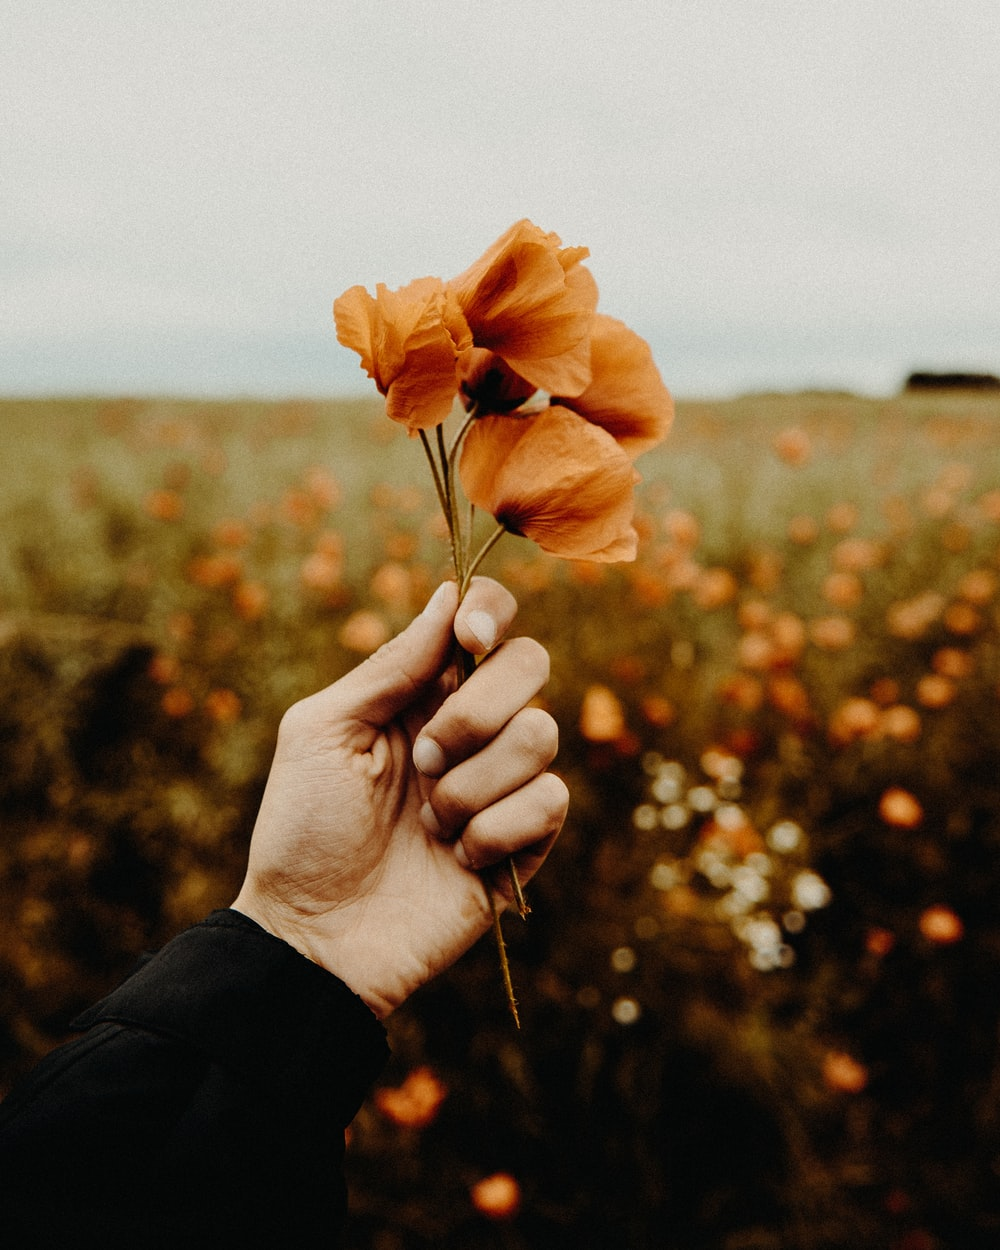 person holding brown petaled flowers